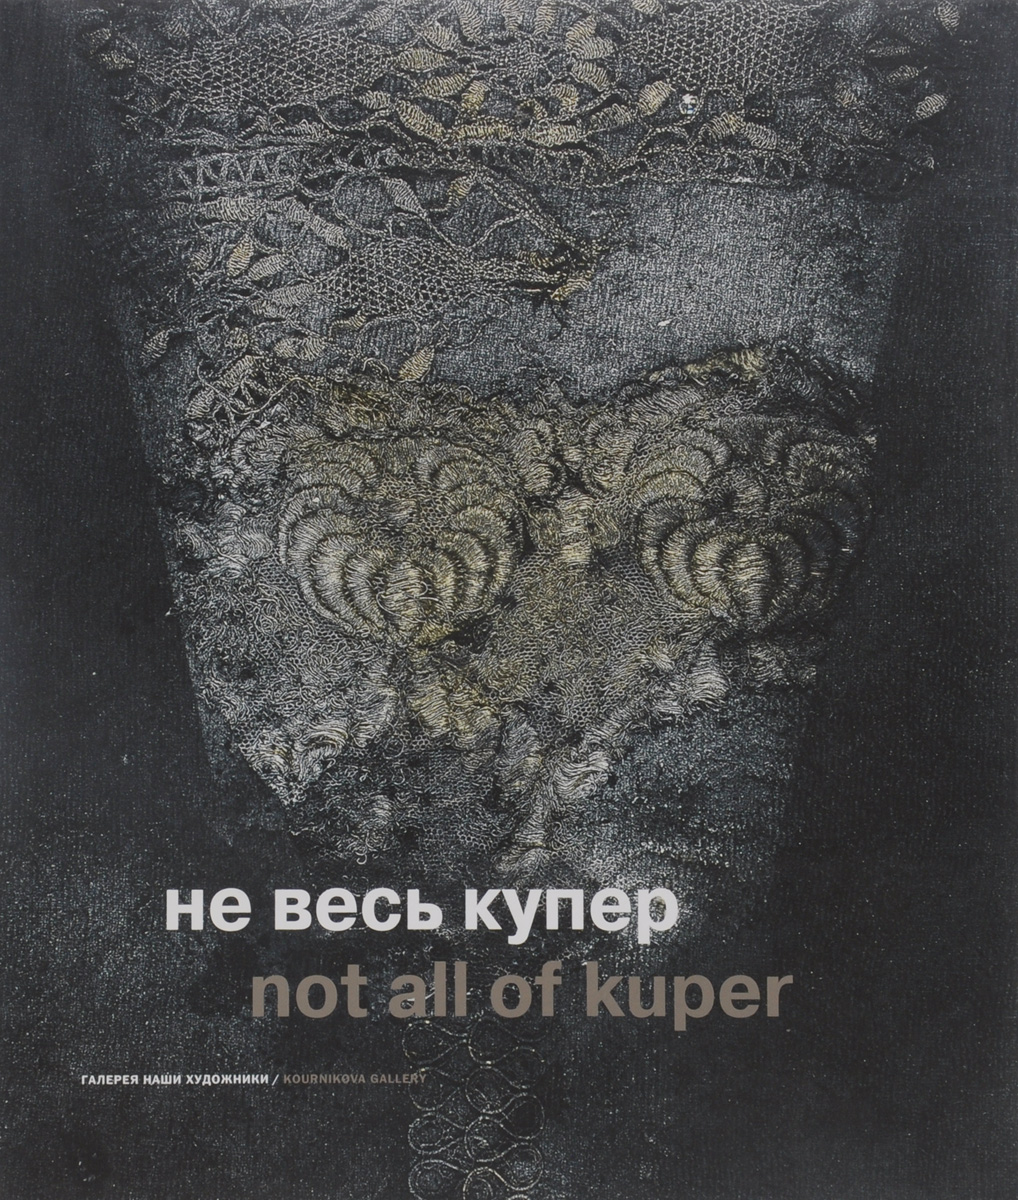 Не весь Купер = Not all of Kuper  978-5-91373-031-2